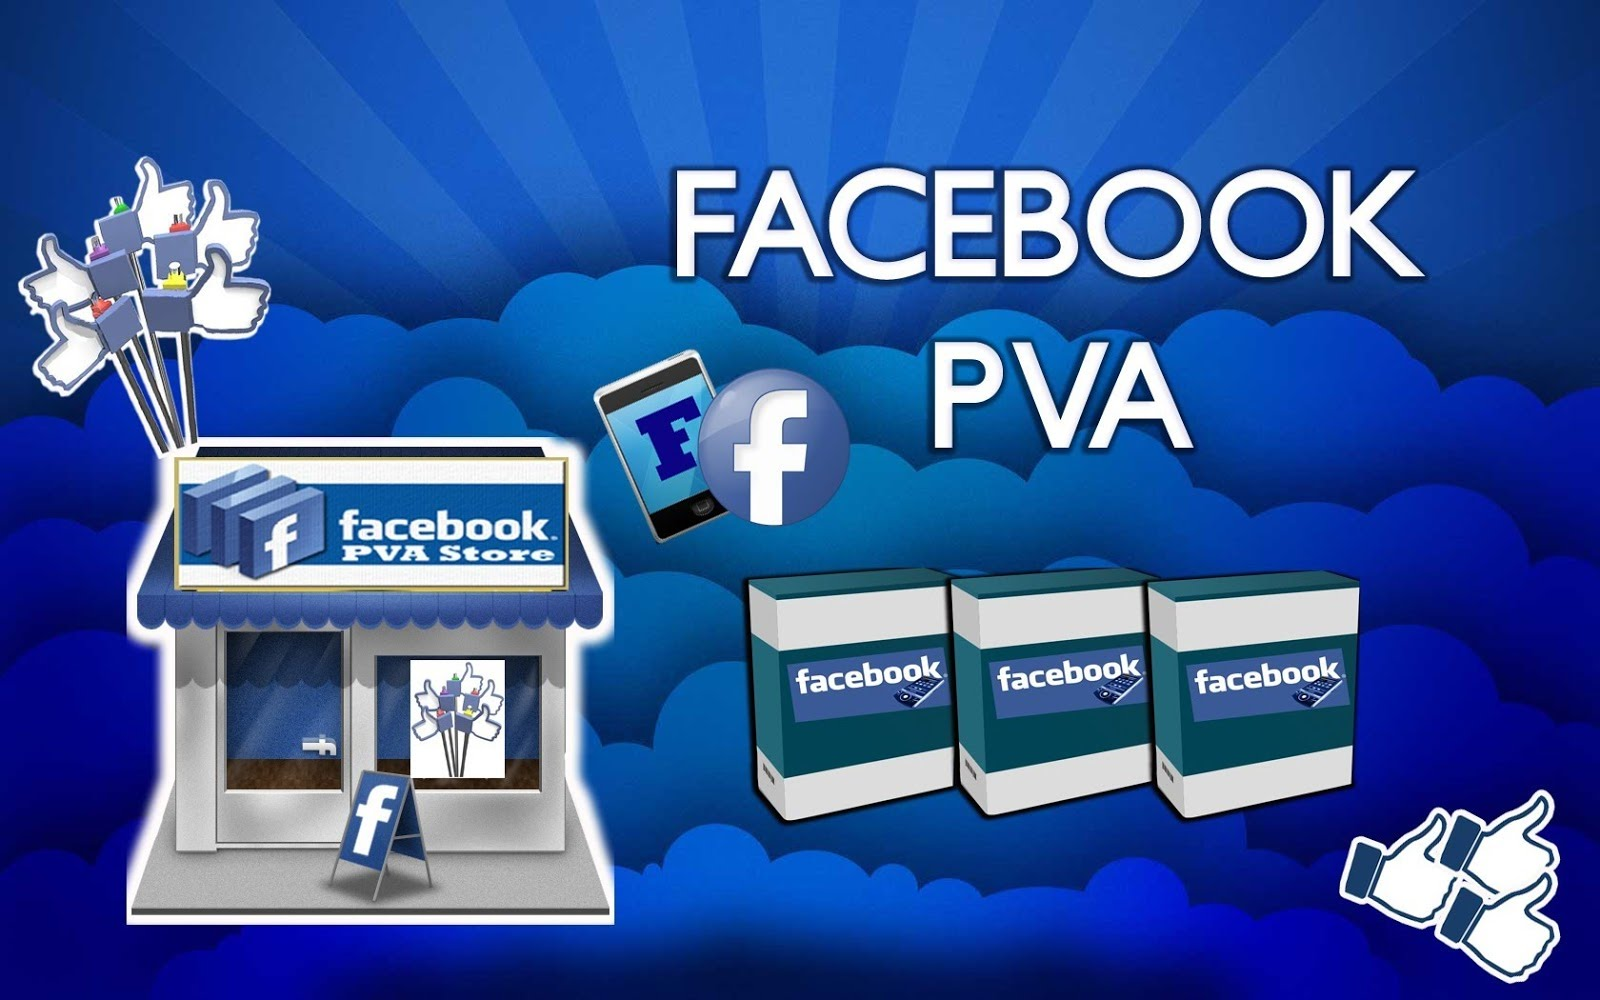 give you 3 aged facebook female accounts to boost your marketing and CPA offers